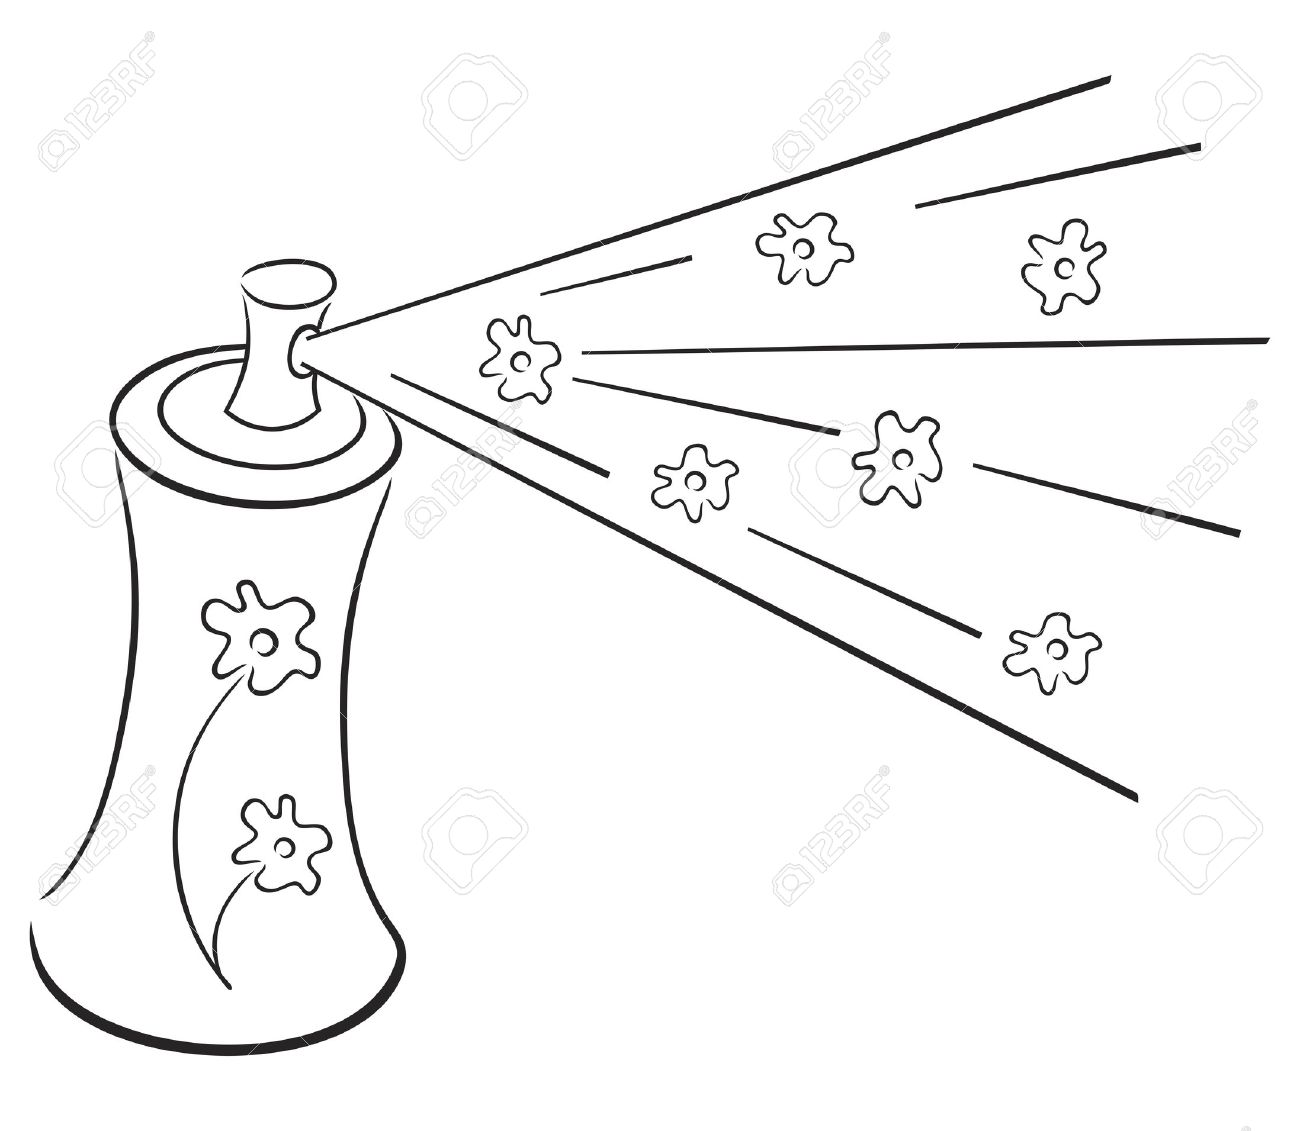 Perfume clipart black and white.